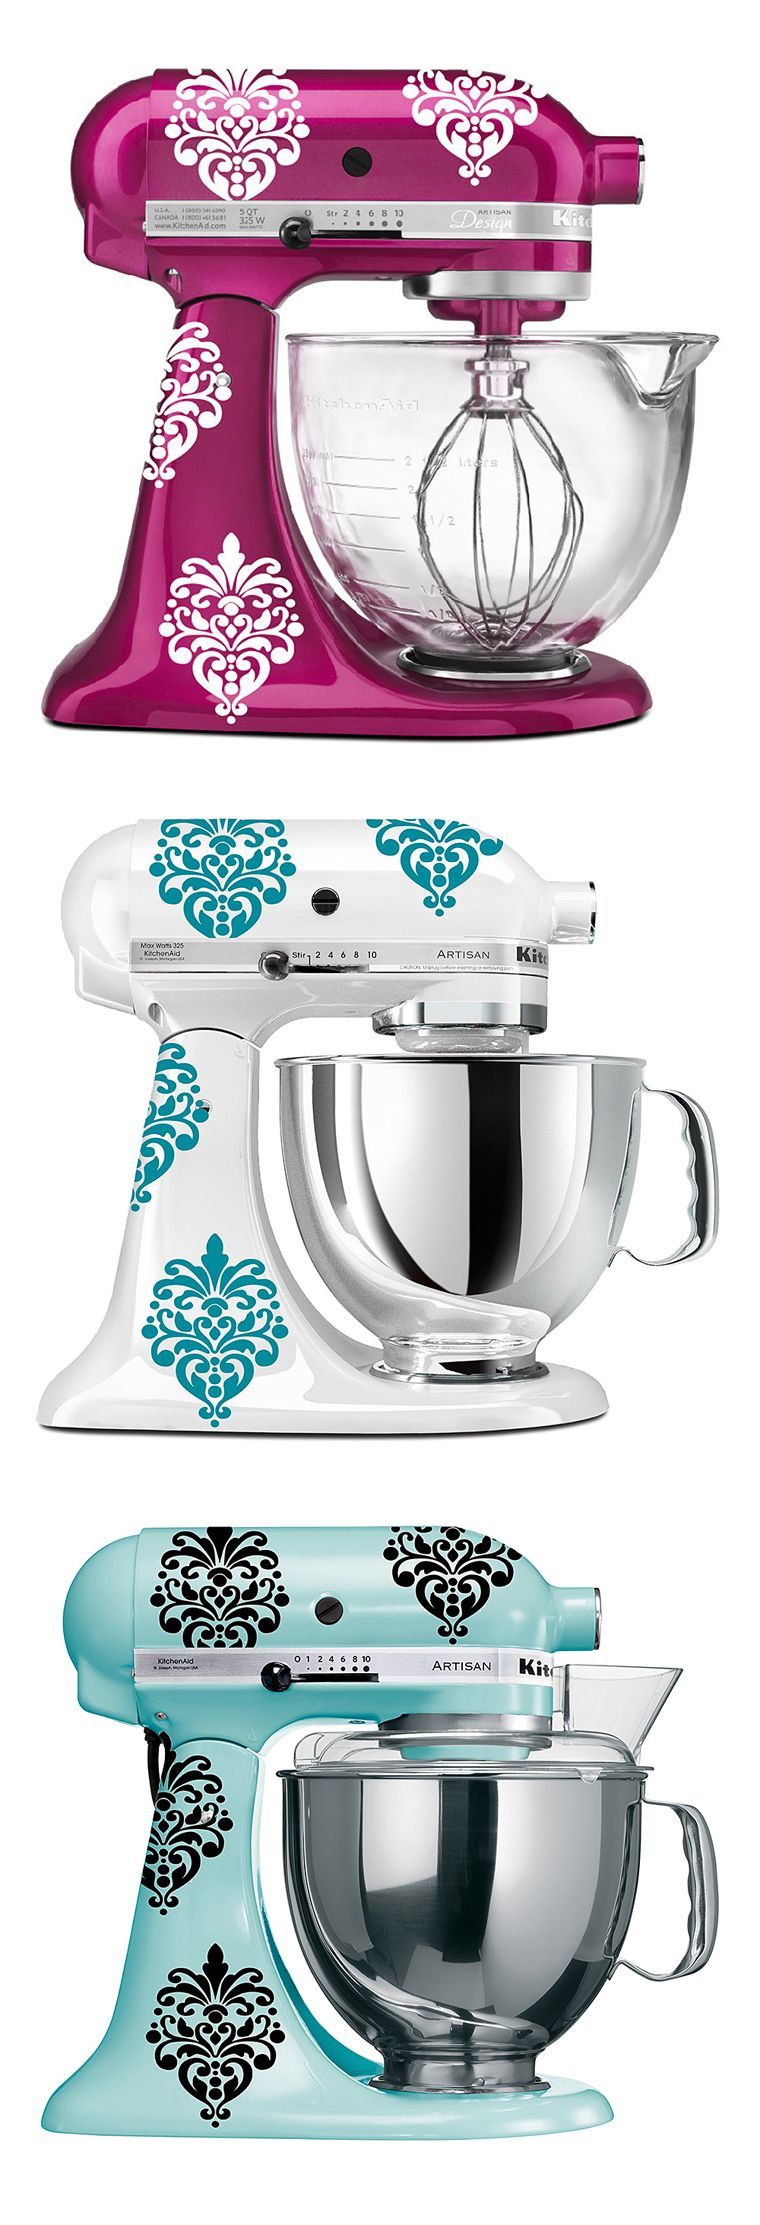 Kitchenaid Mixer Kitchen Aid